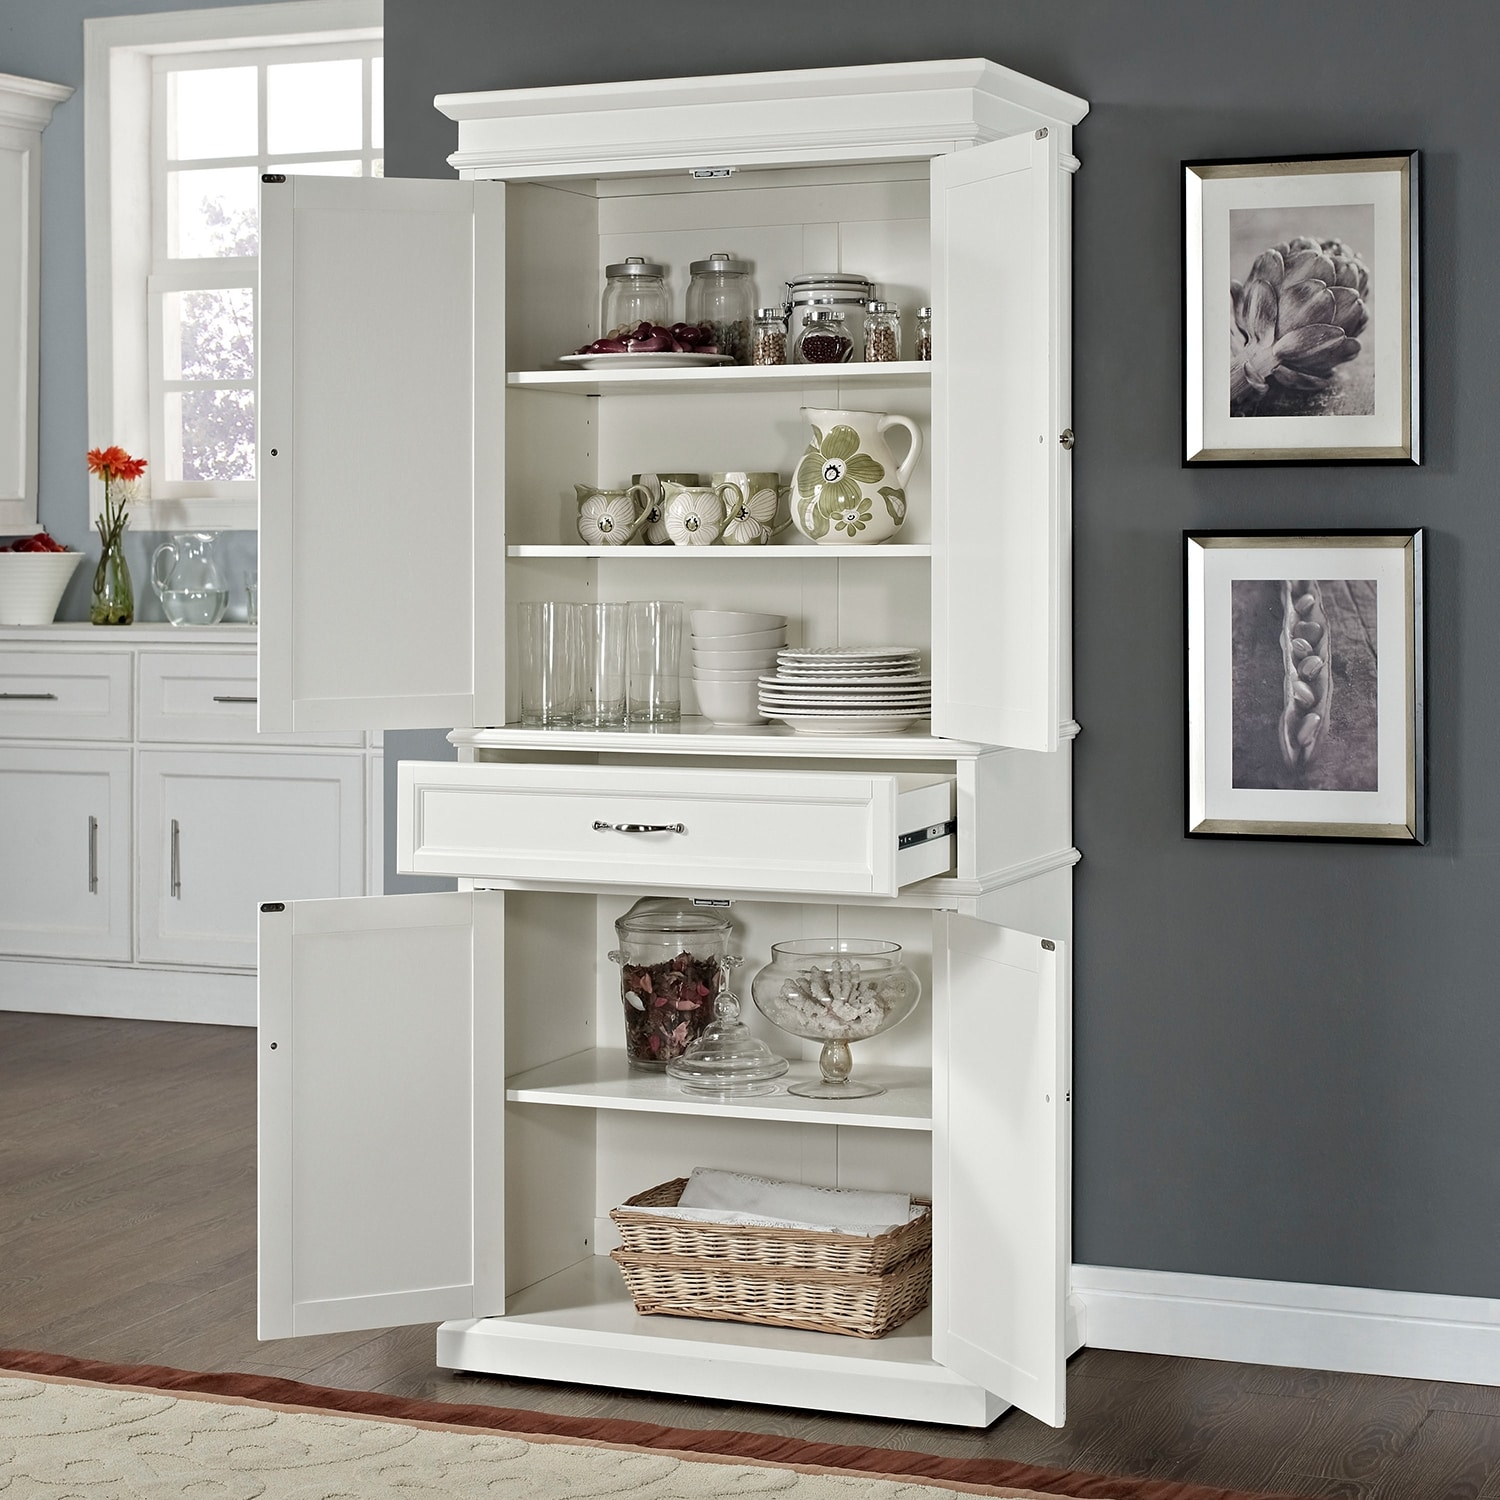 Kitchen Storage Cabinets At Target Midway Pantry White American Signature Furniture